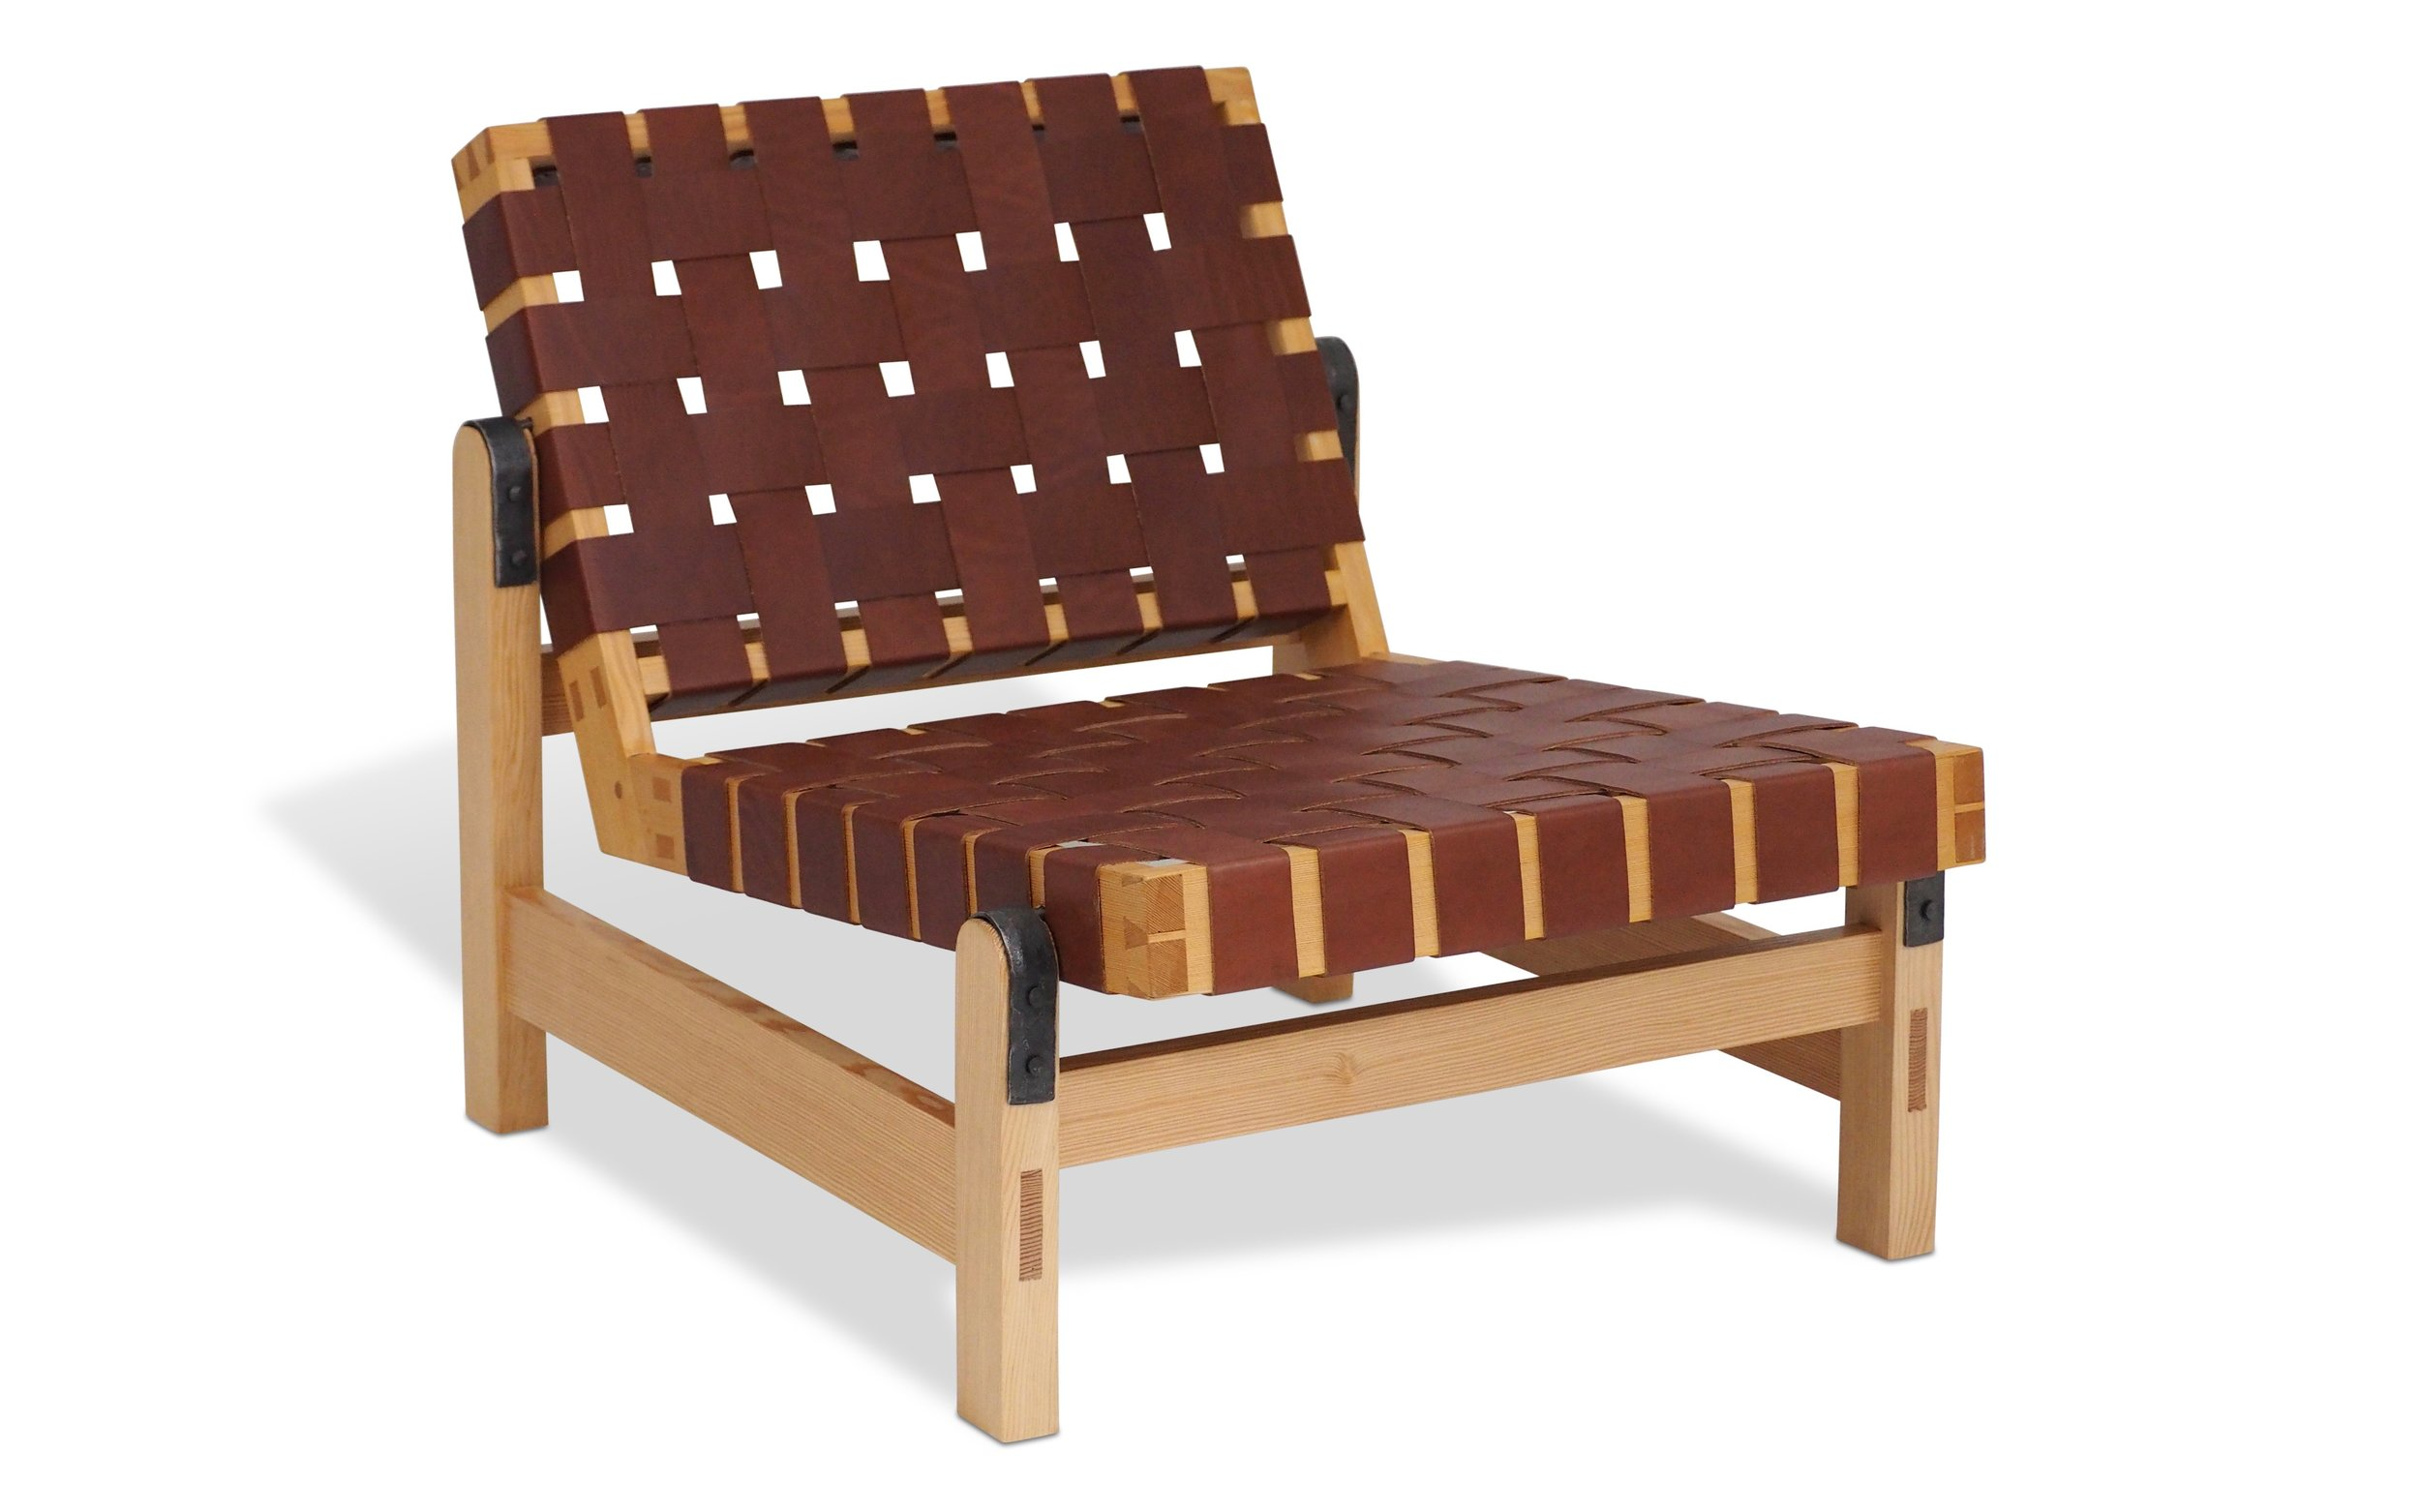 Woven leather lounge chair.